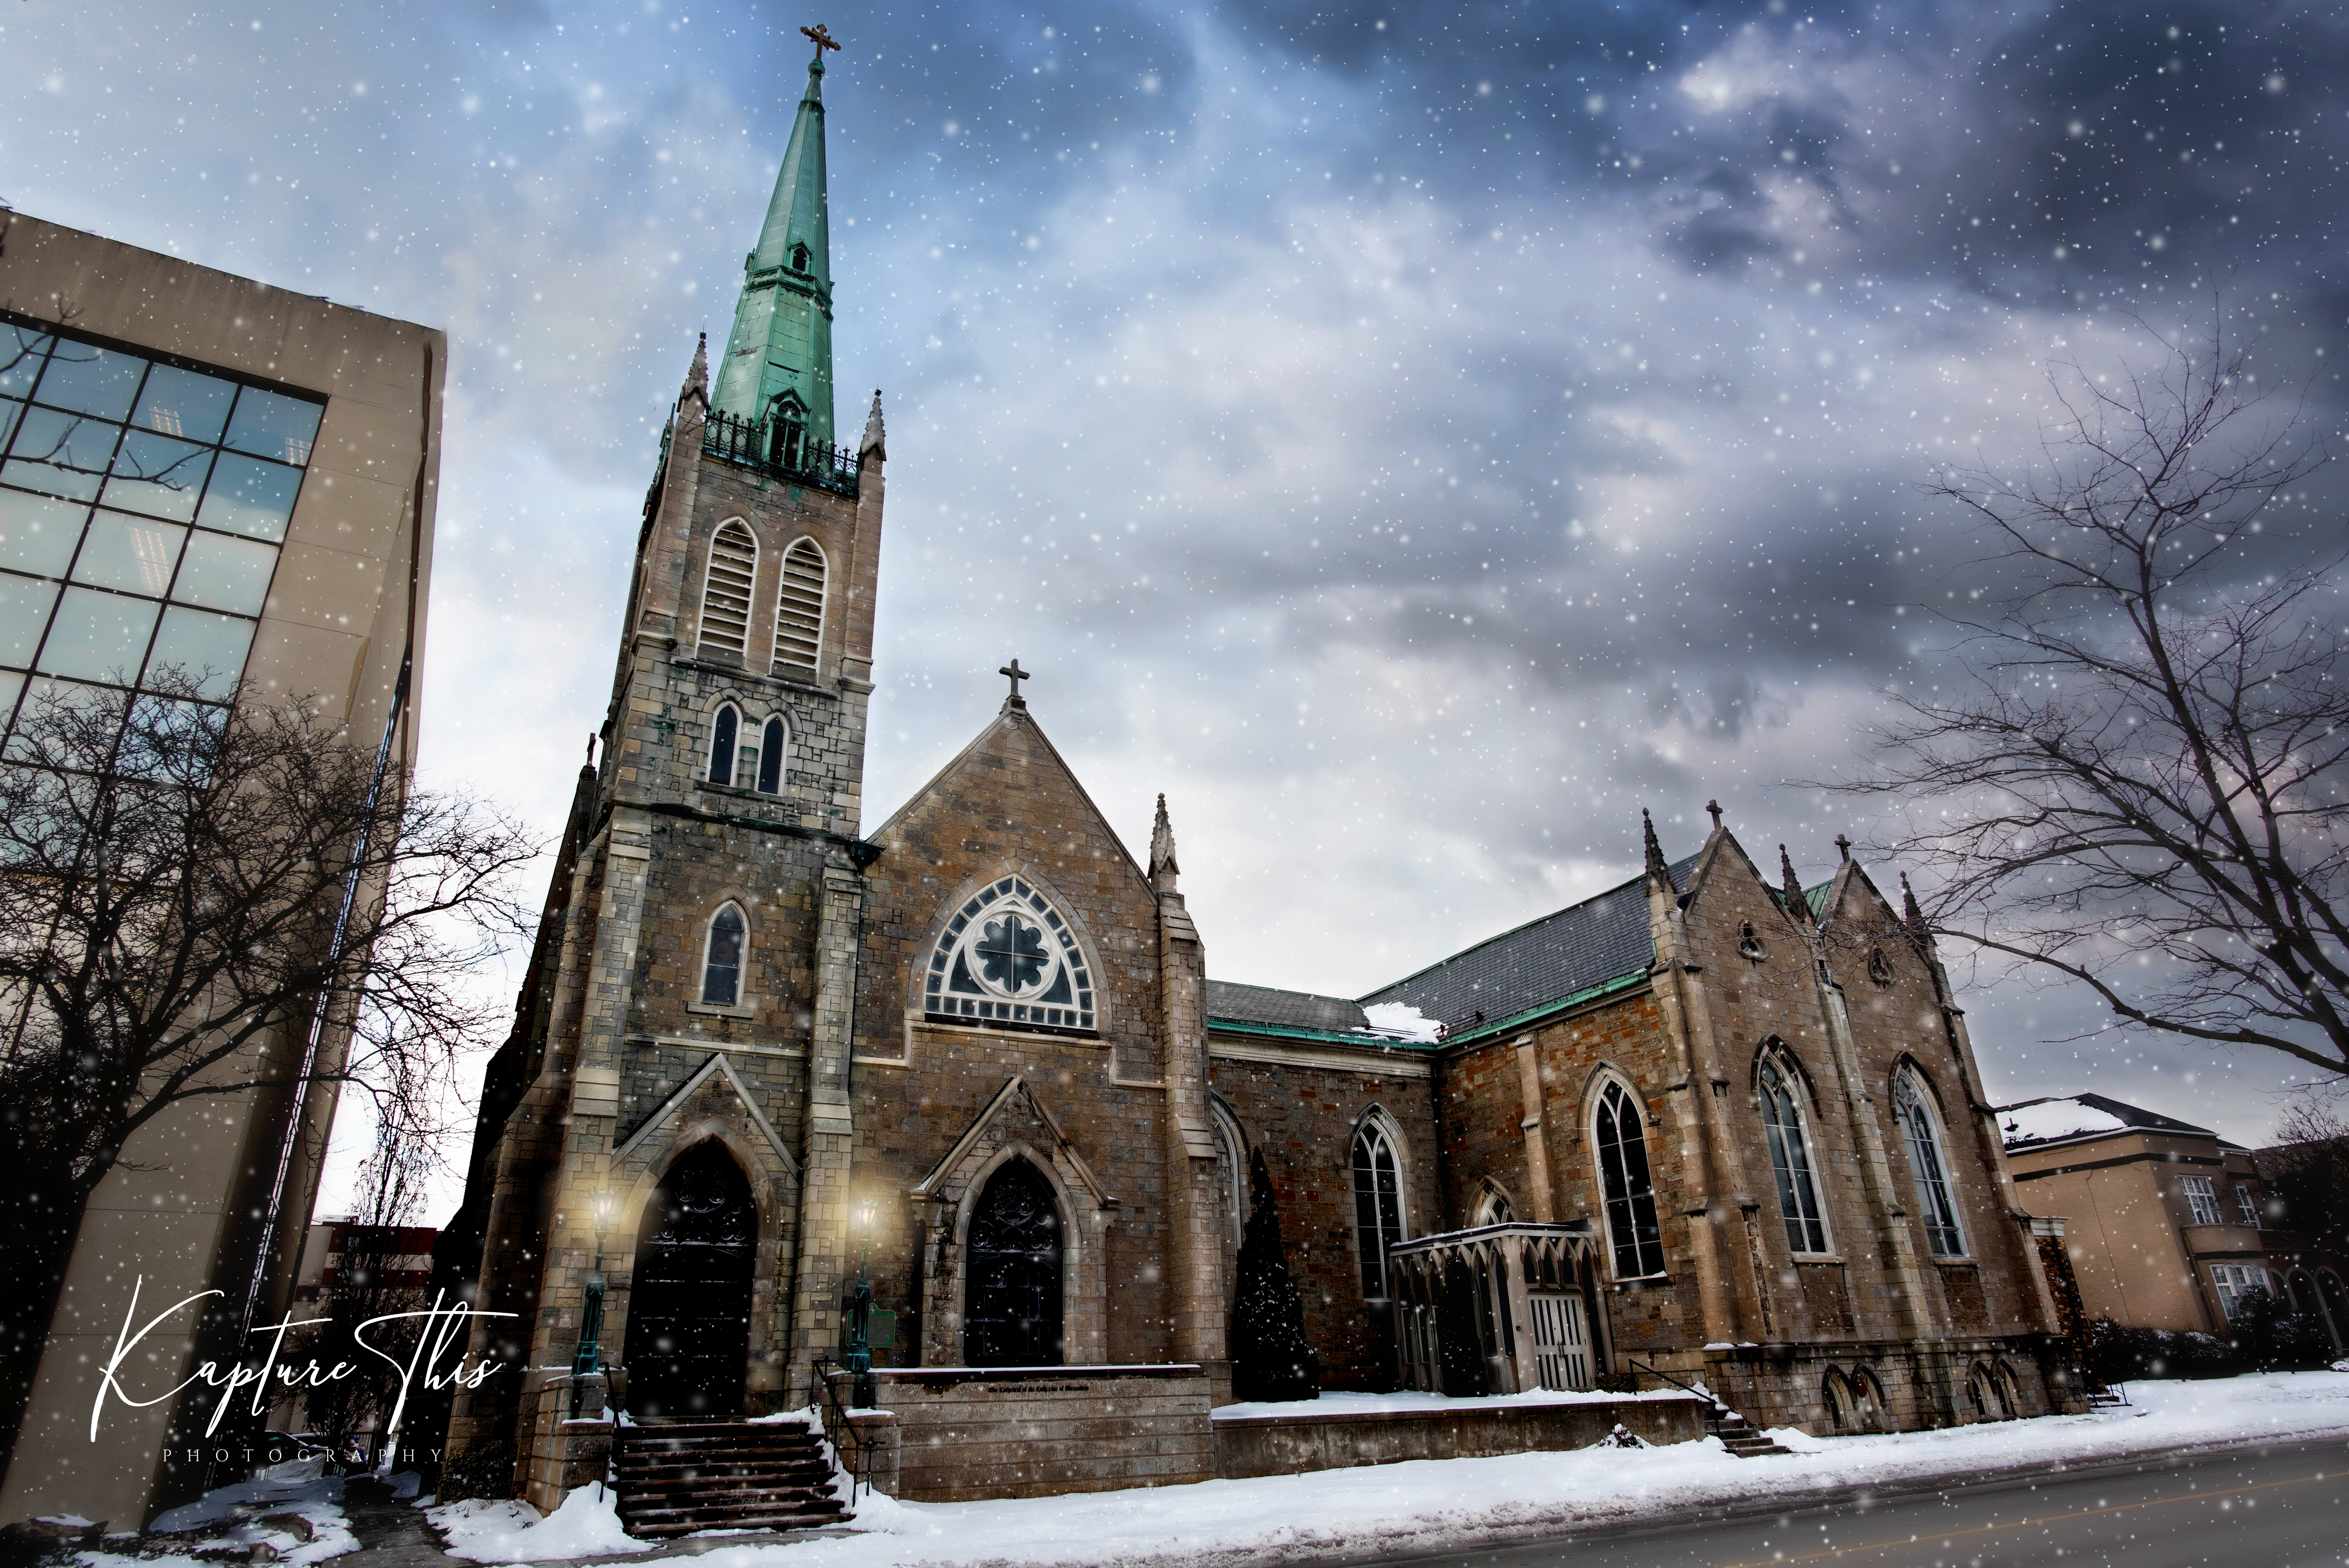 CathedralofstcatharinesSNOW